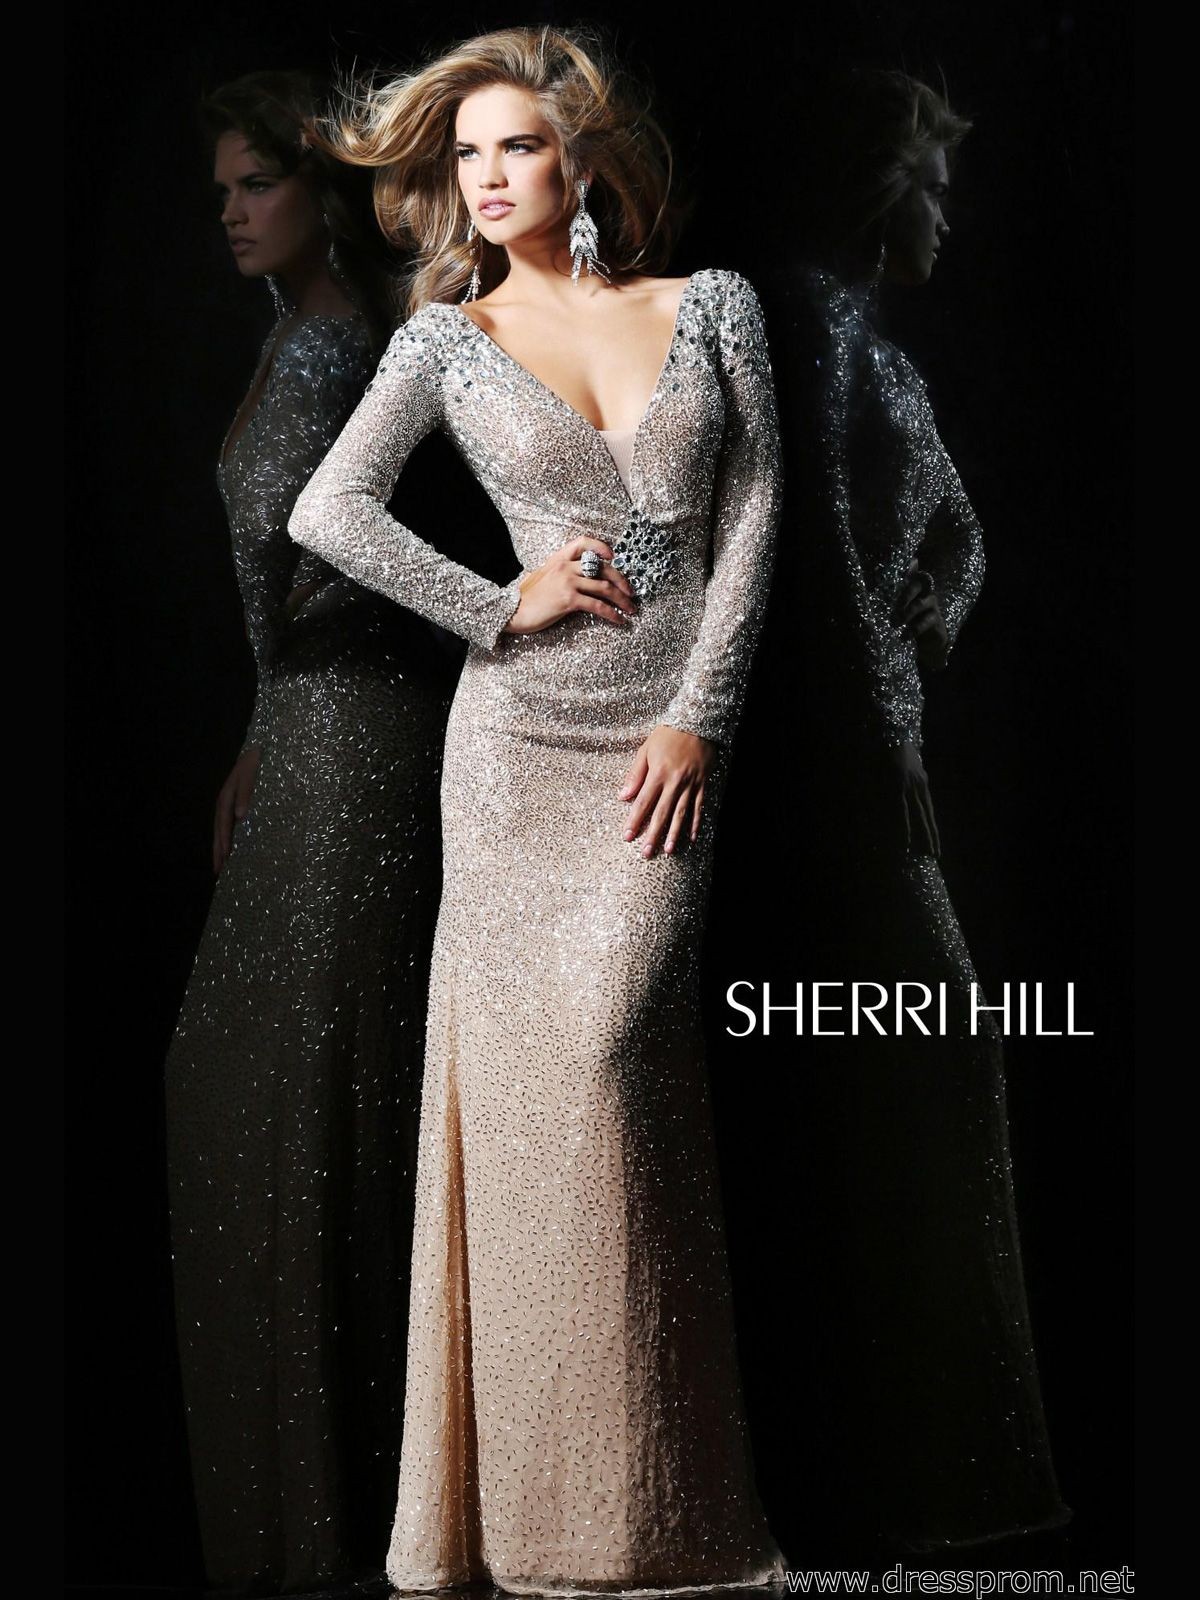 Crazy for Old Hollywood\'s glamour | PAGEANT WEAR | Pinterest ...